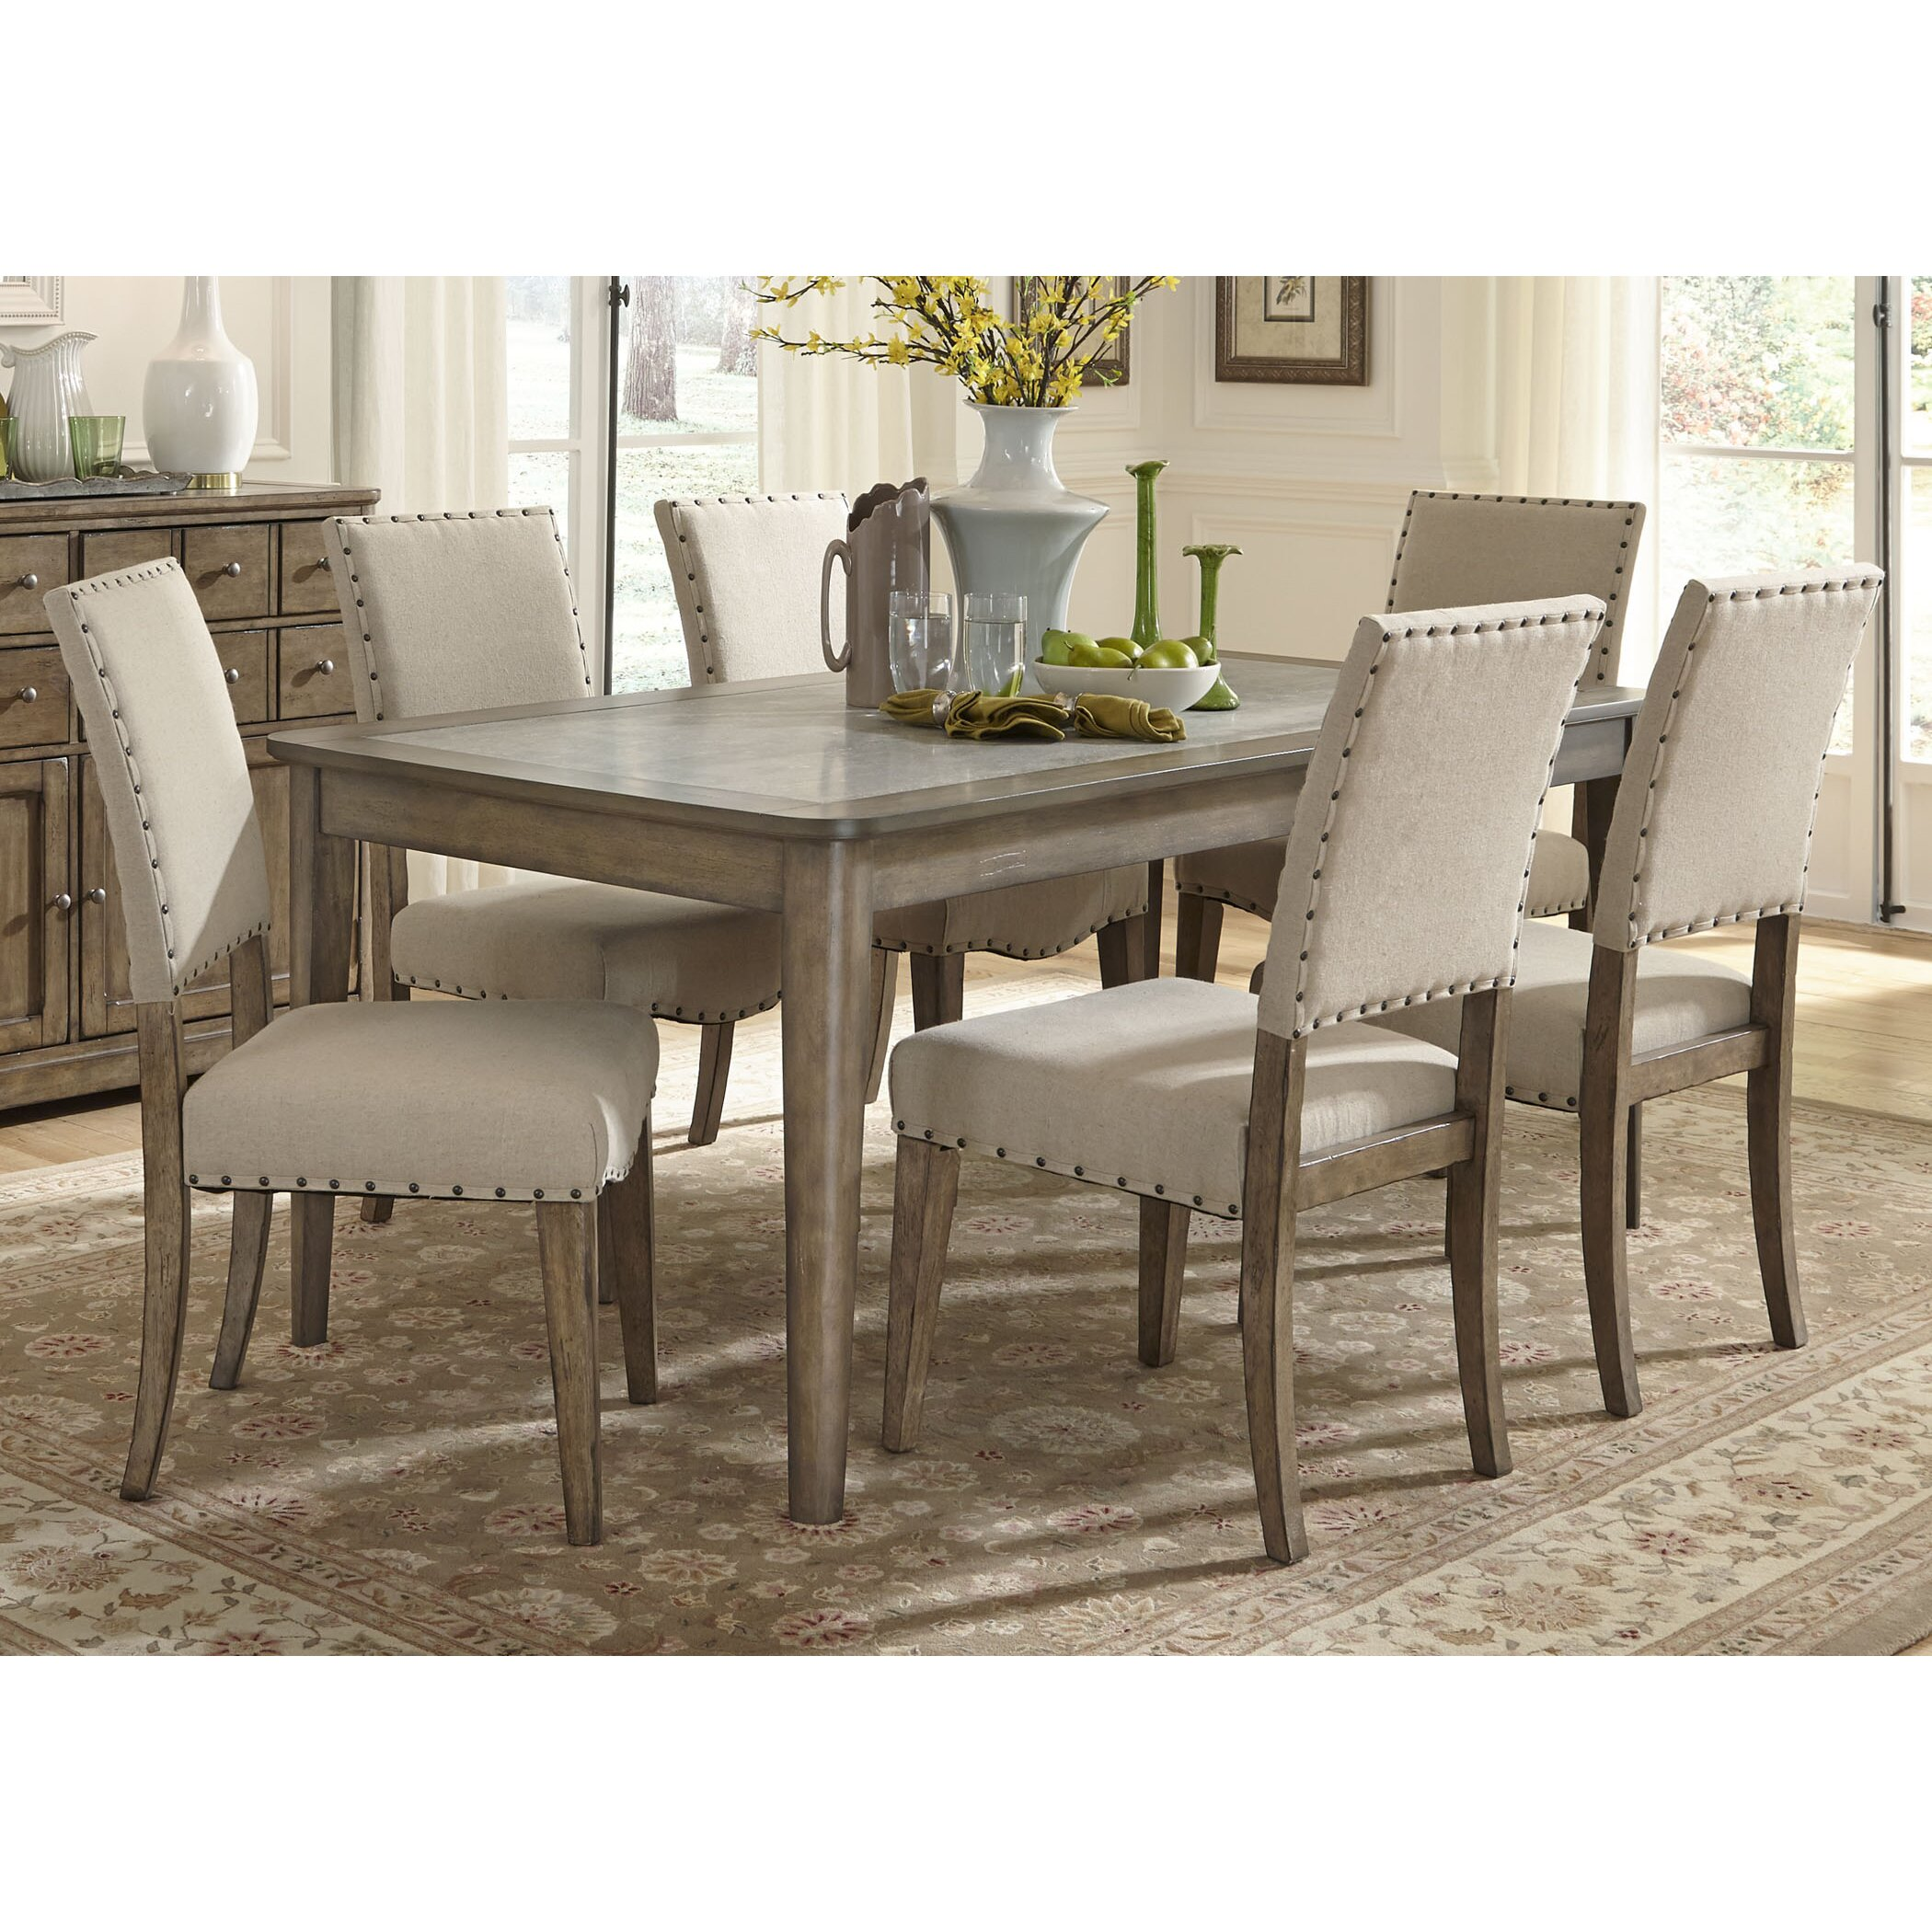 Liberty Furniture 7 Piece Dining Set & Reviews